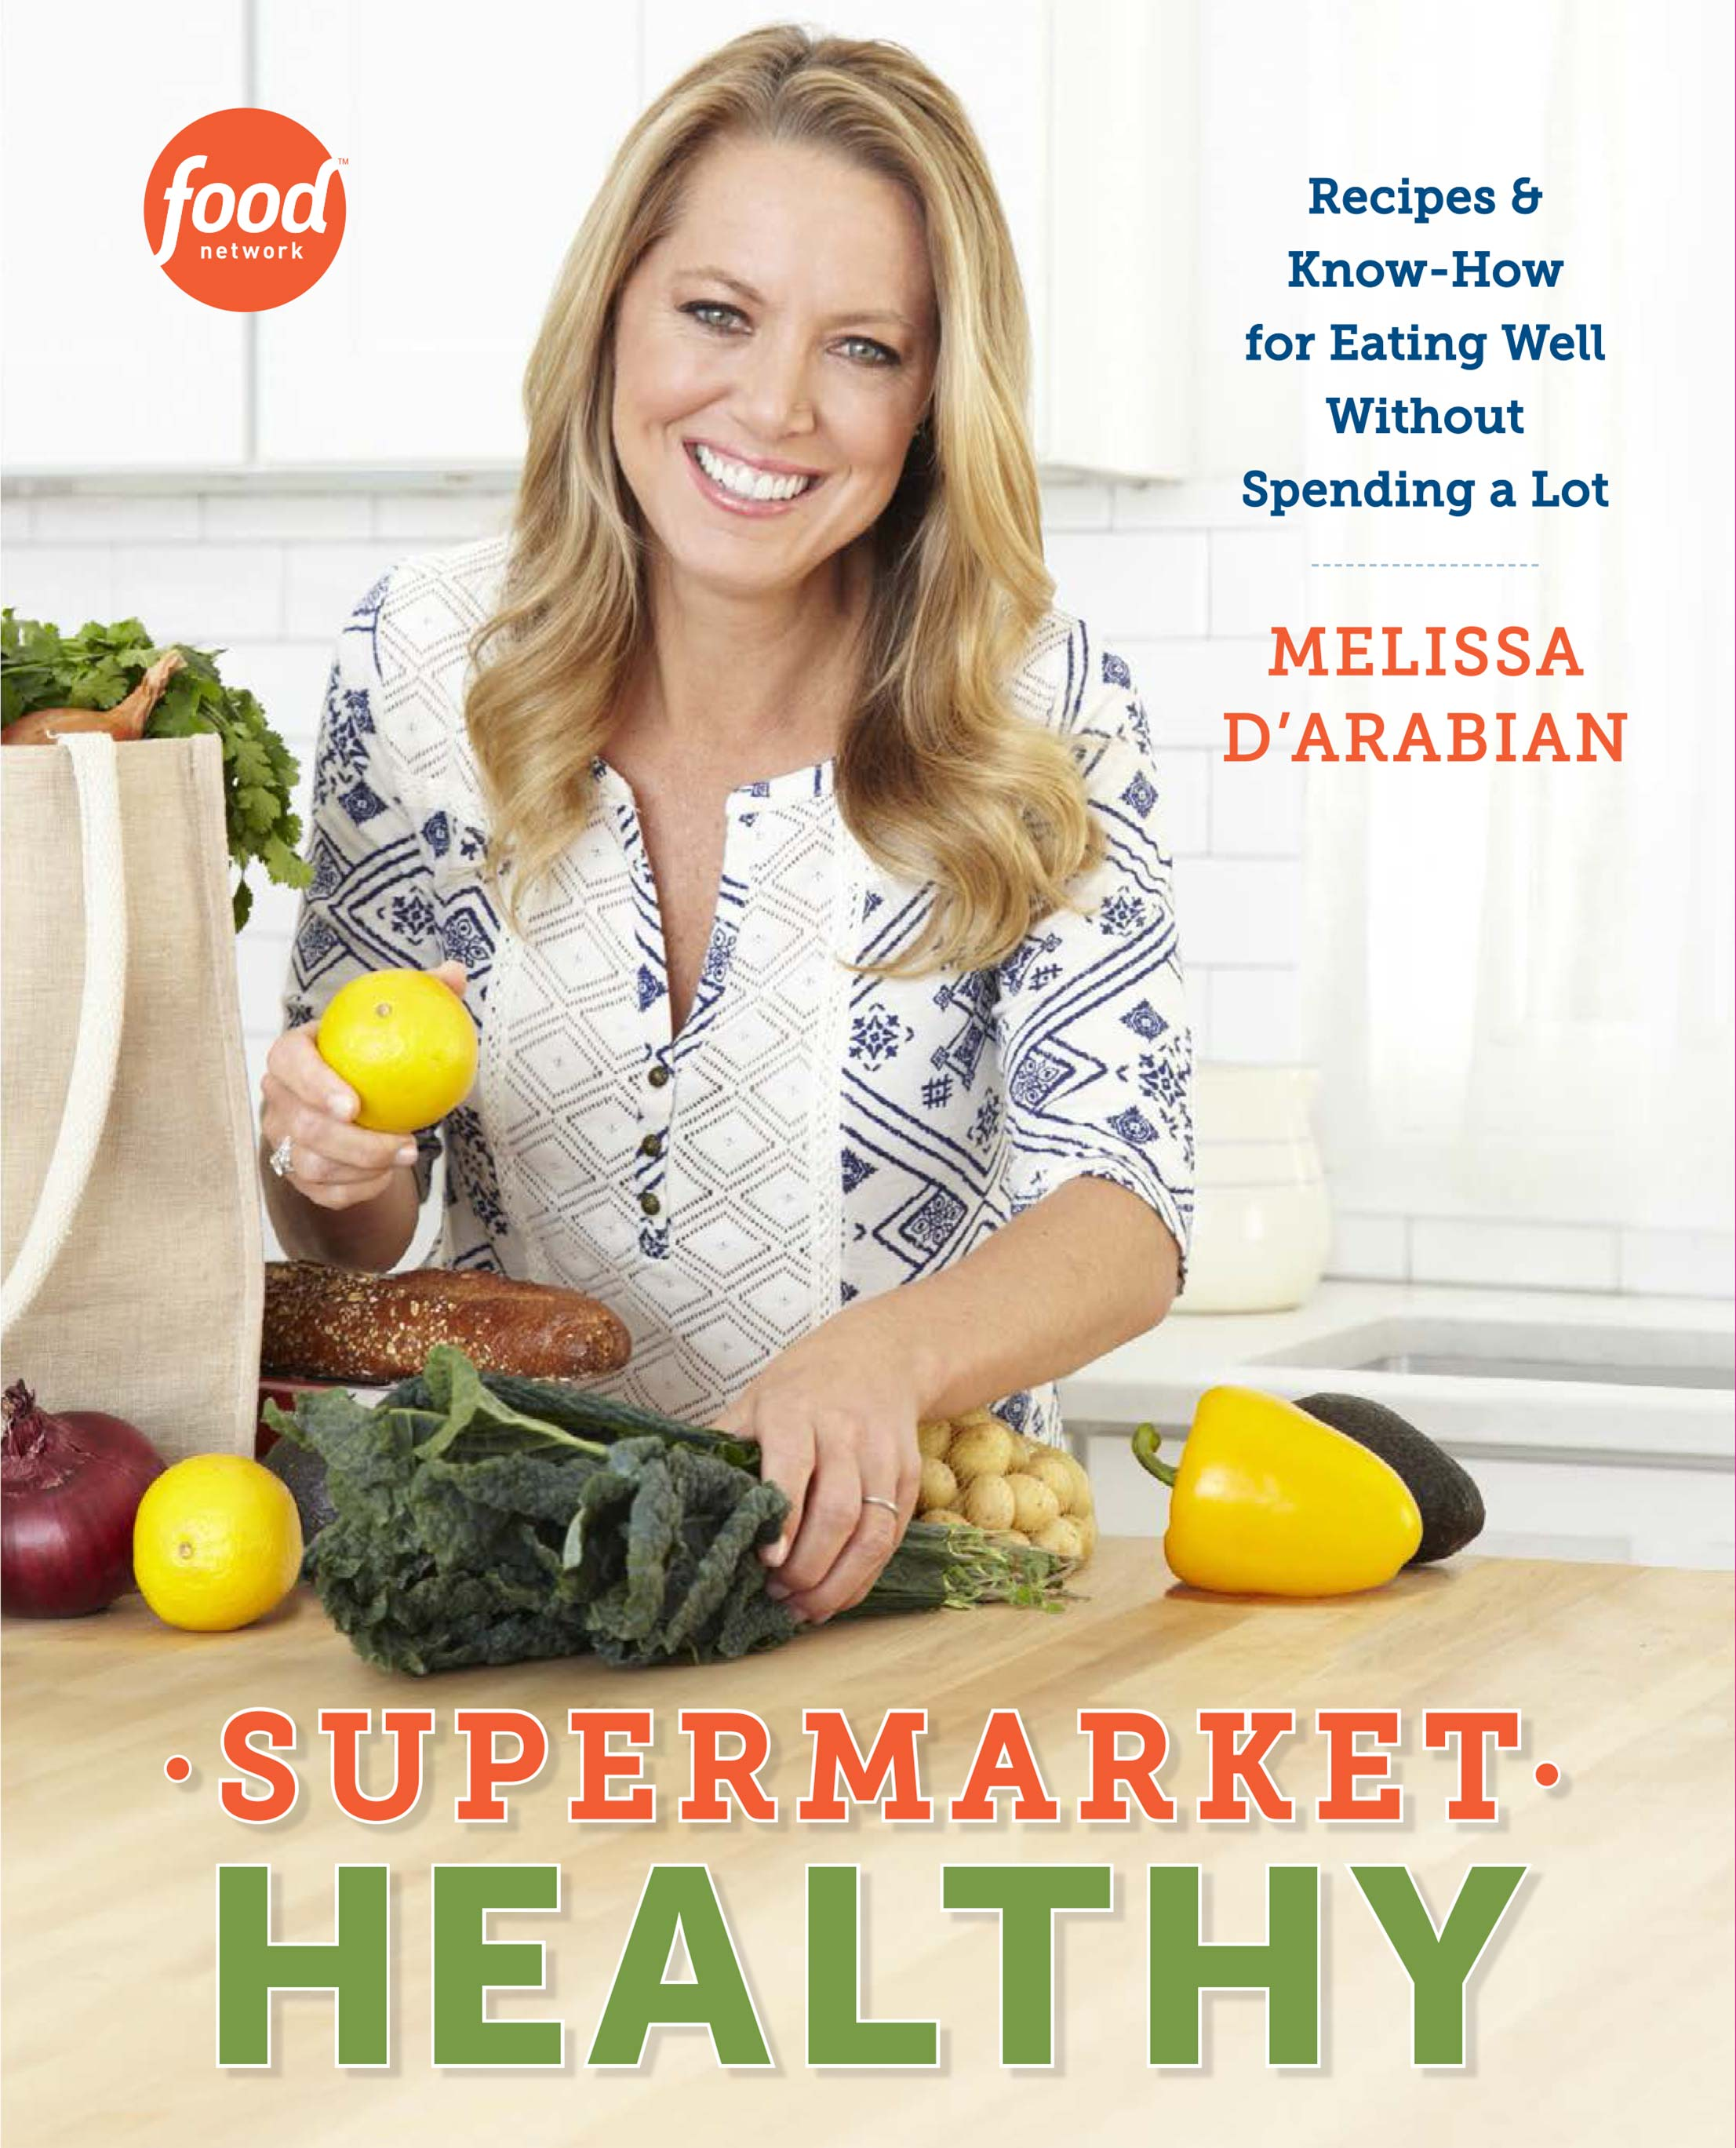 Supermarket healthy new cookbook by melissa darabian supermarket healthy new cookbook by melissa darabian supermarkethealthy melissa darabian forumfinder